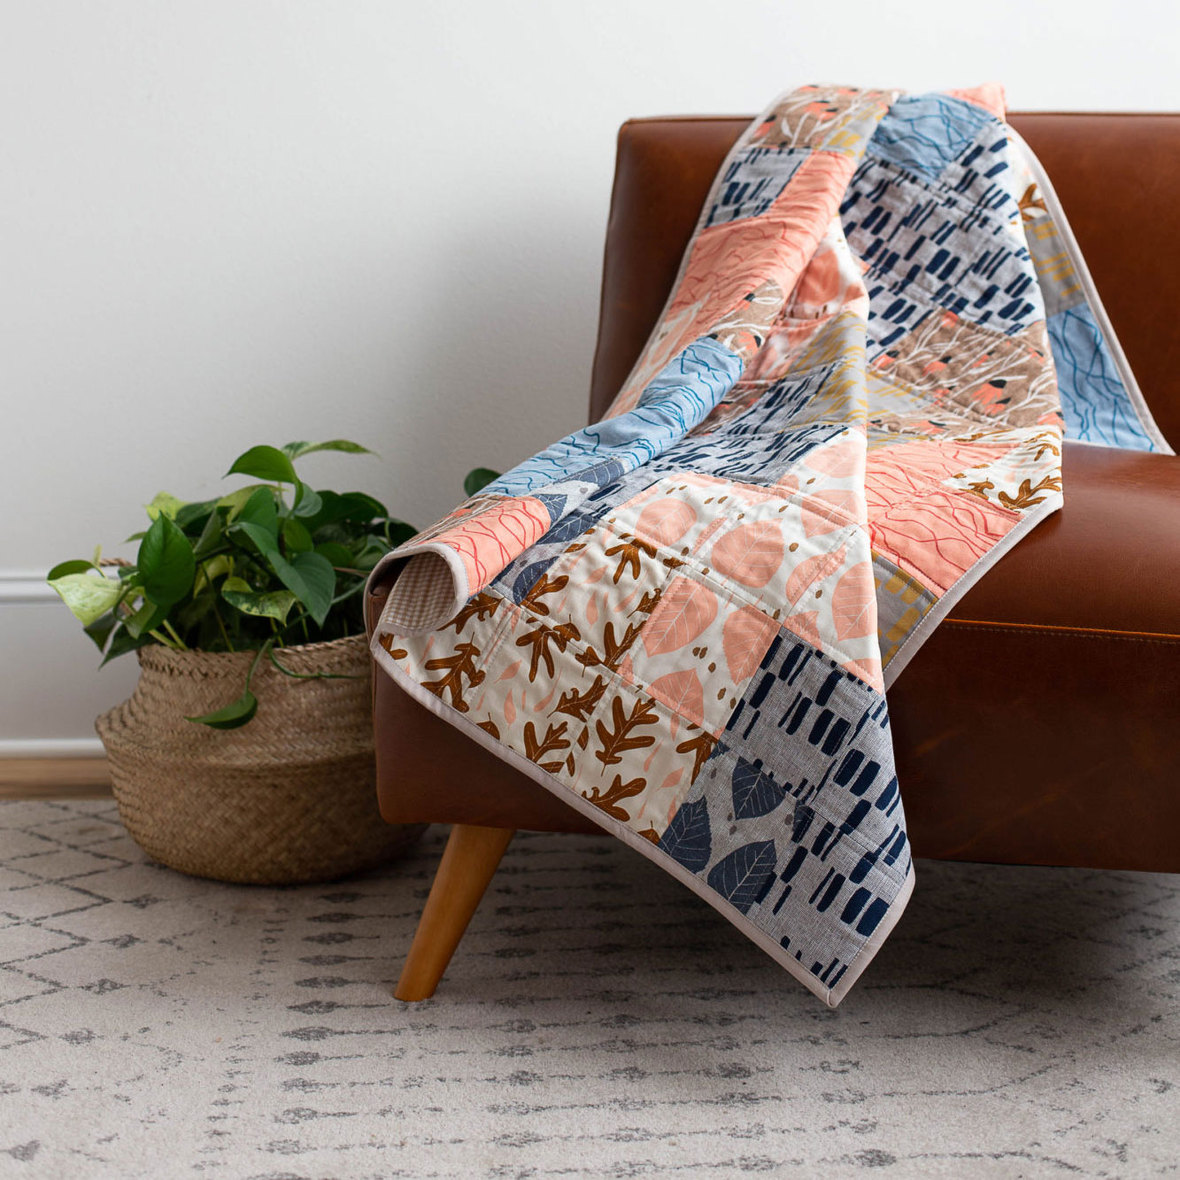 Square-Arithmetic-Quilt-from-Jeni-Baker-on-NH-blog-3